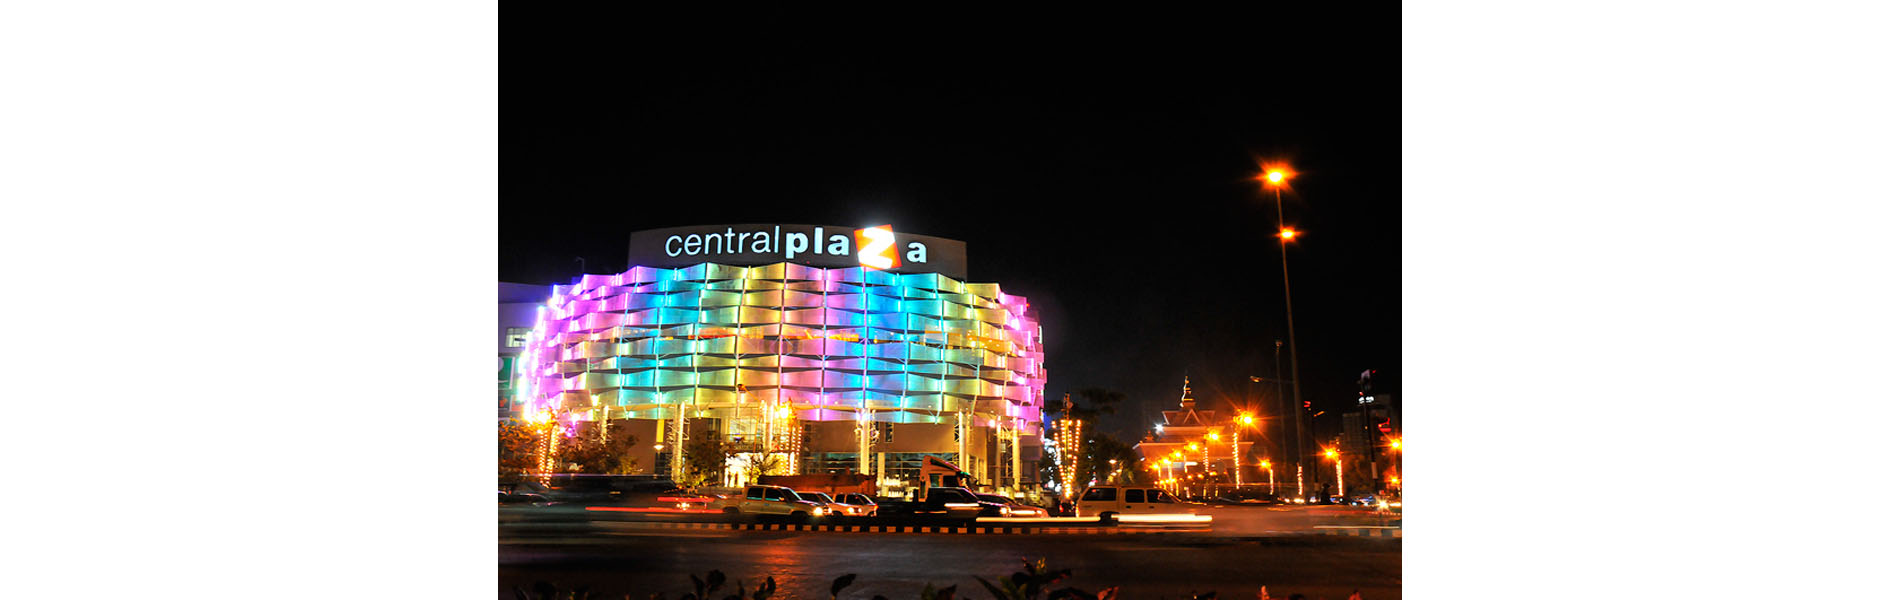 CENTRAL PLAZA KHON KAEN